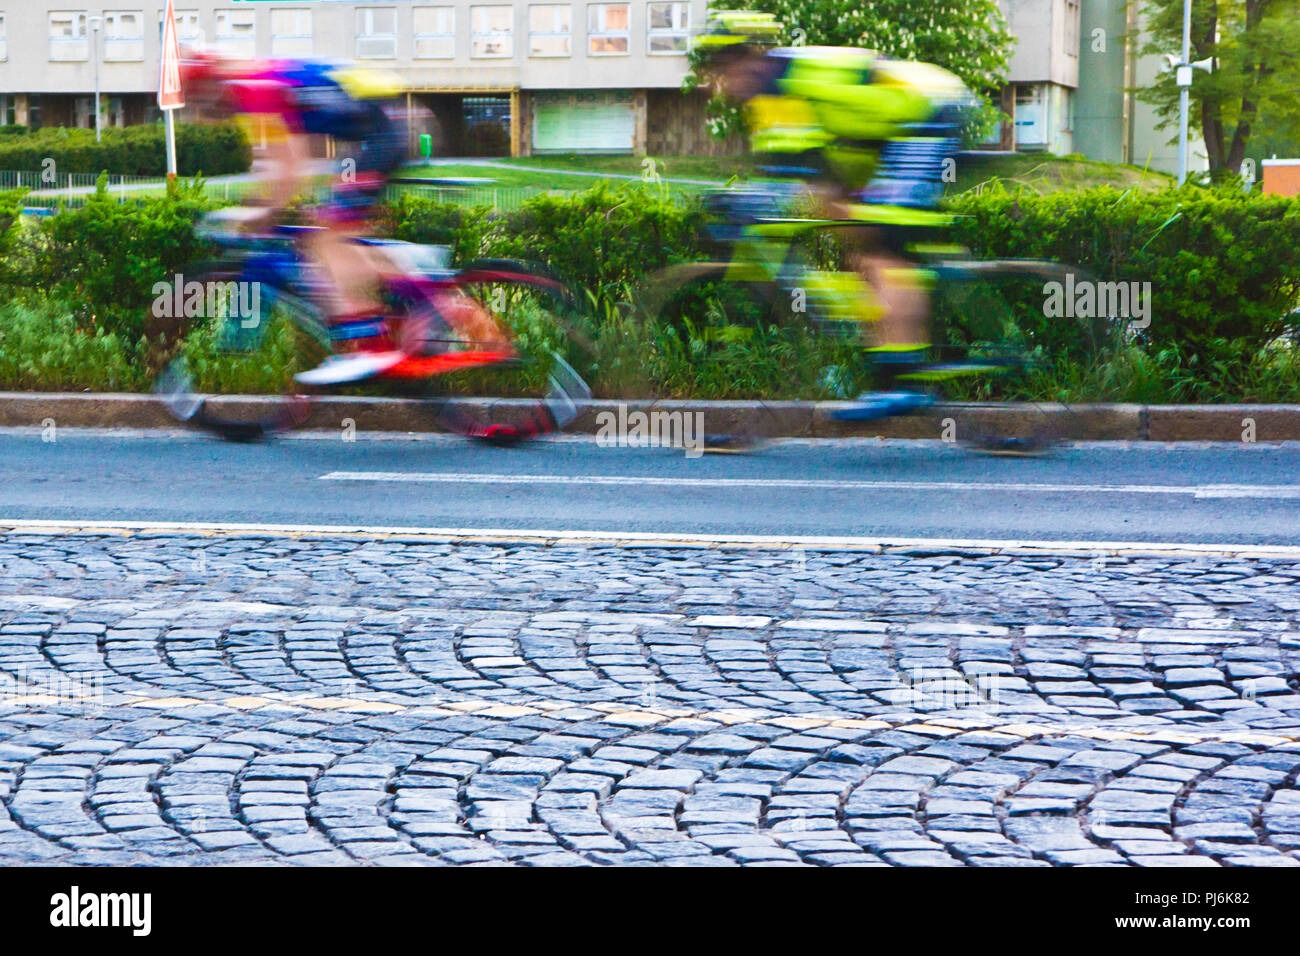 cyclists sprinting during a road bicycle racing in the city streets, motion blur effect - Stock Image